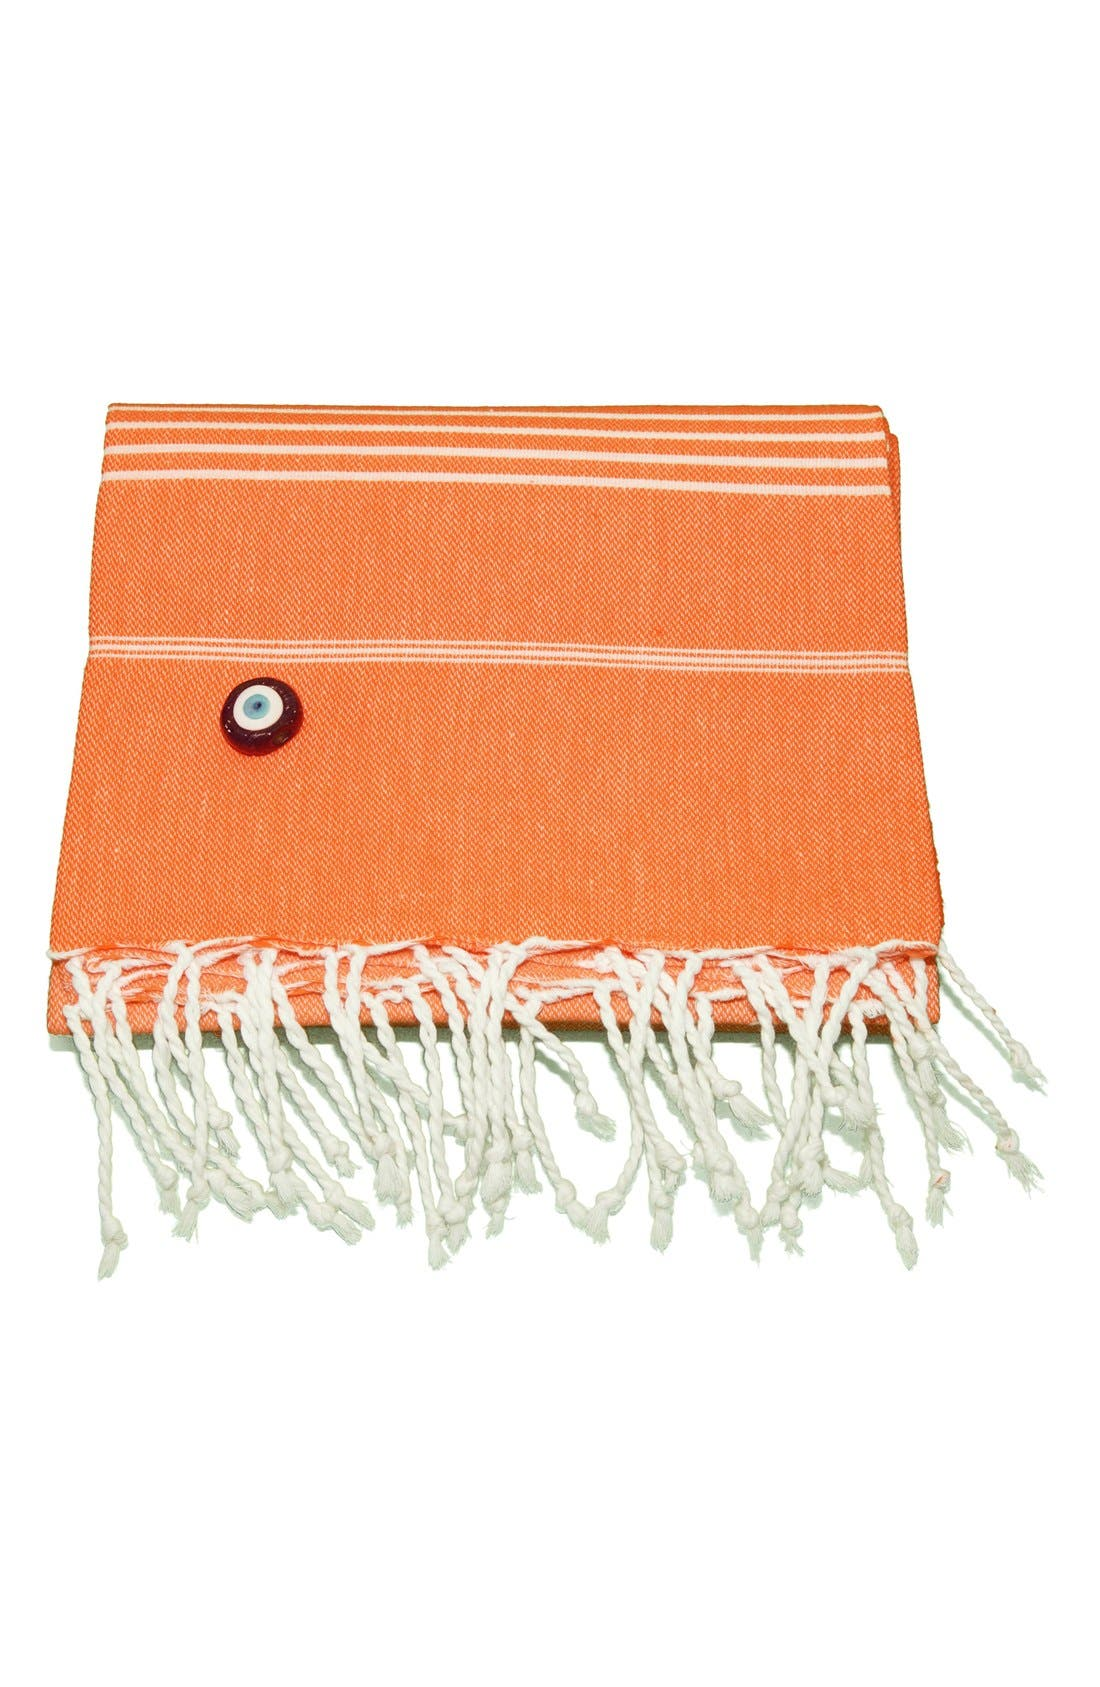 Linum Home Textiles 'Lucky' Turkish Pestemal Towel